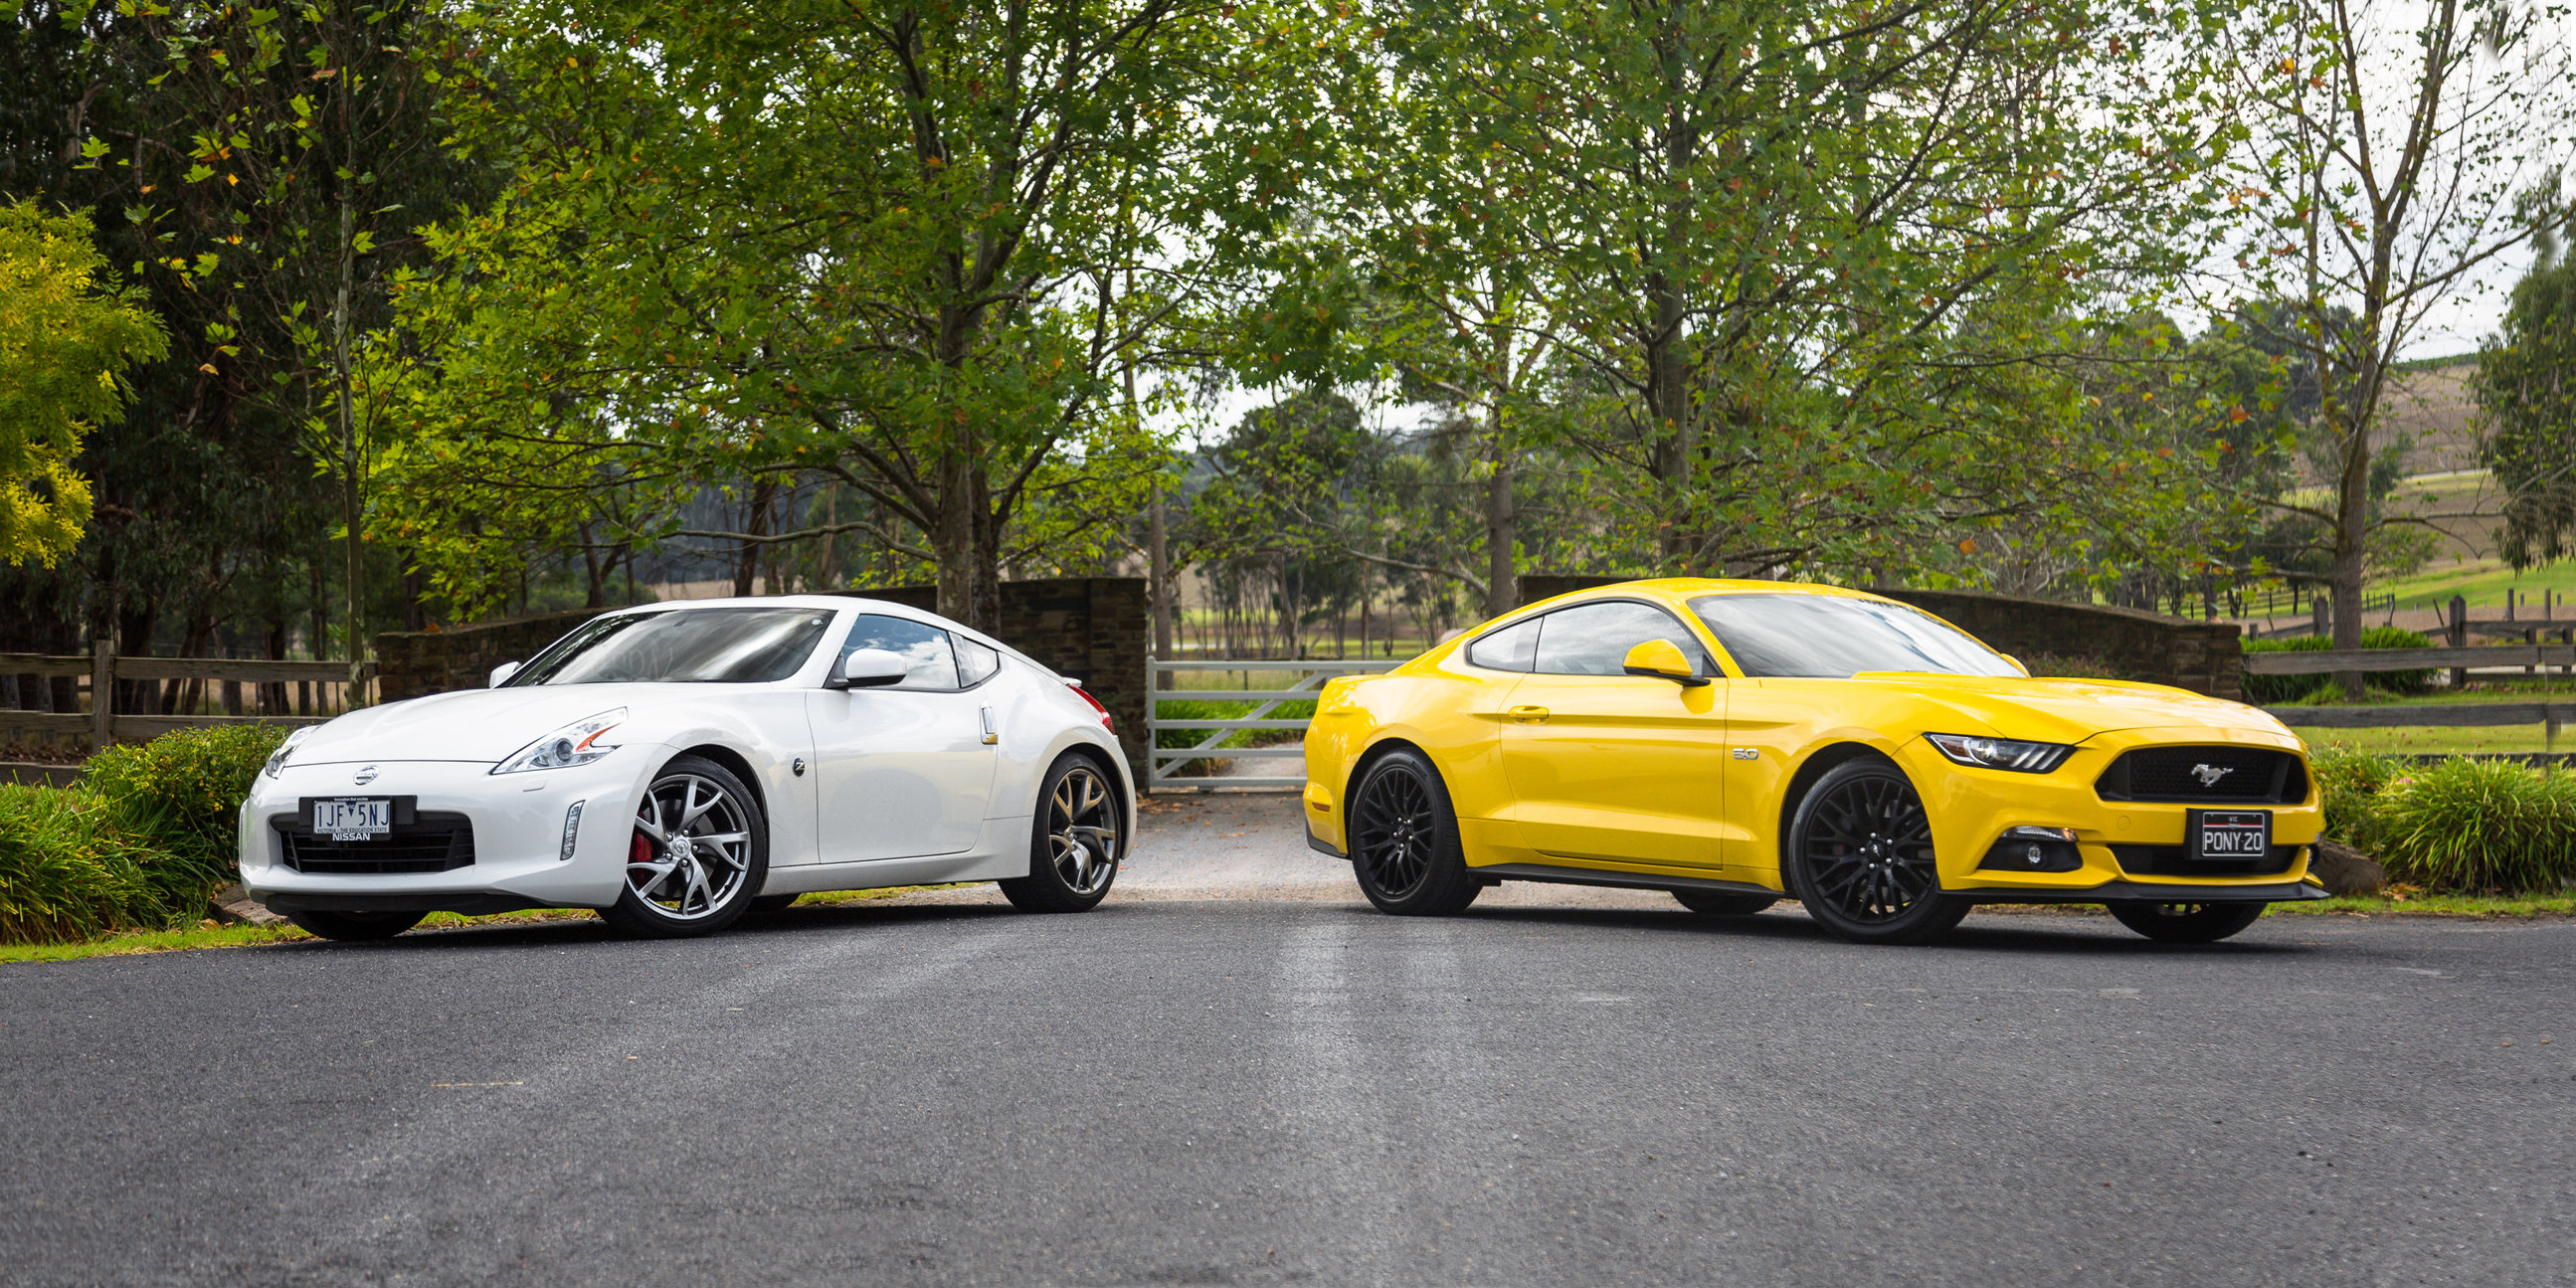 Ford Mustang GT Fastback v Nissan 370Z Coupe comparison